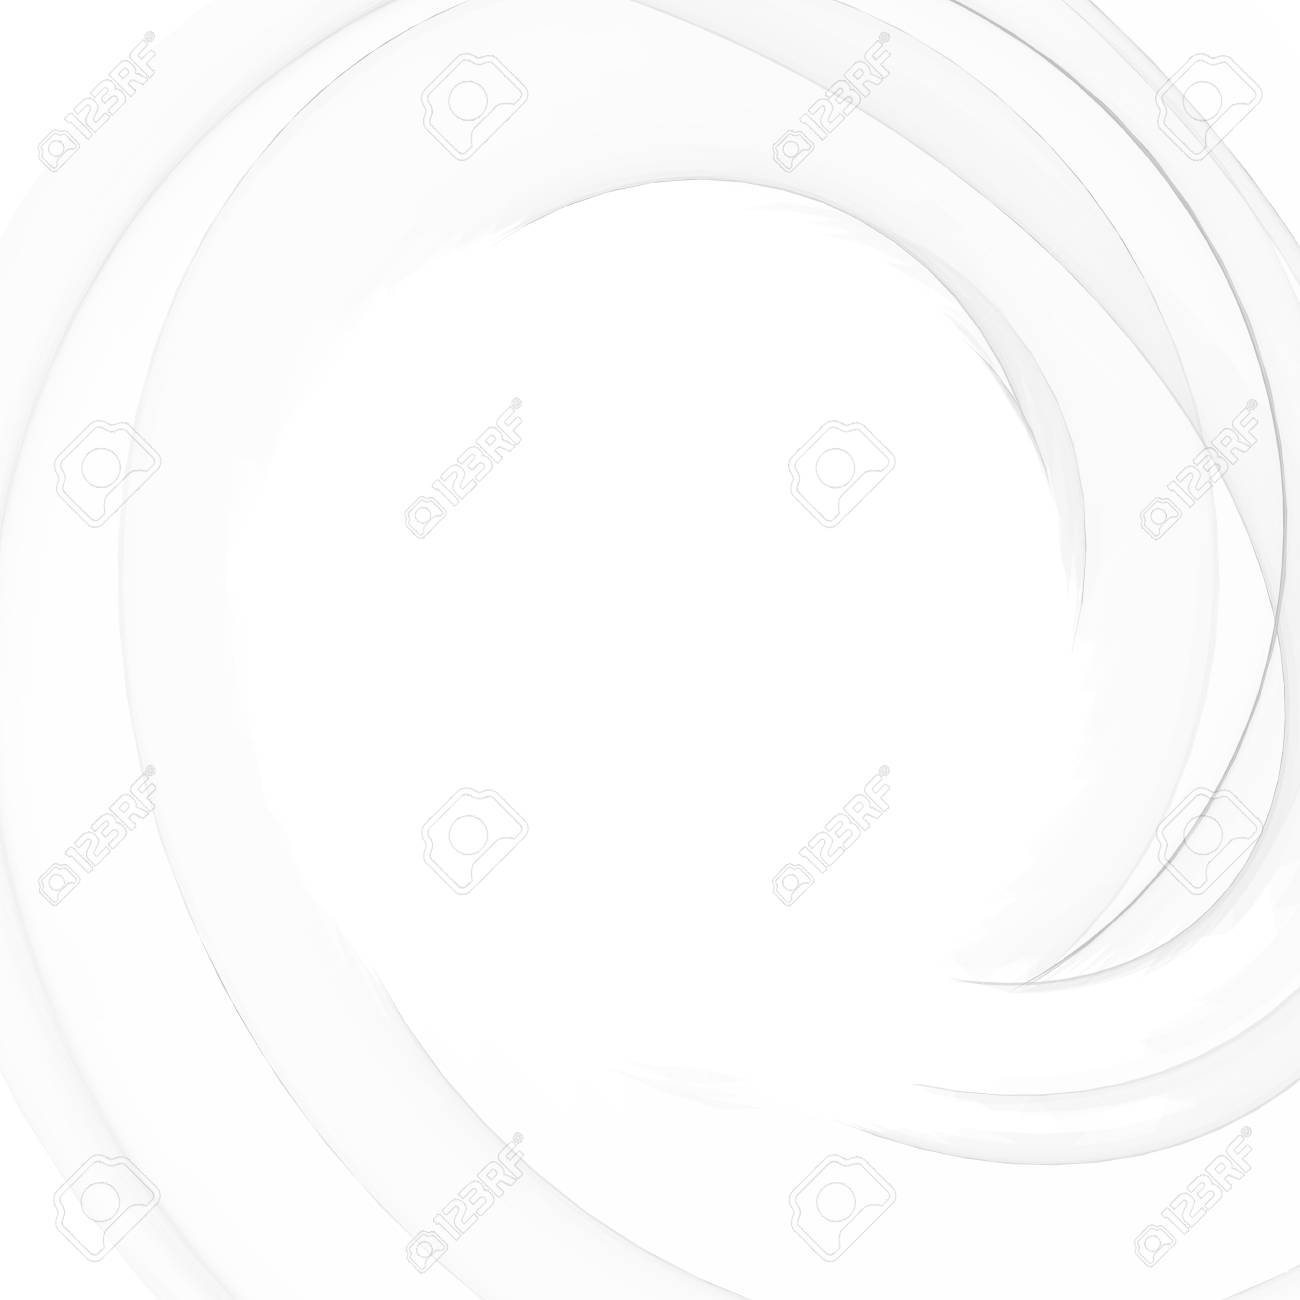 Beautiful abstract concept design. Gray swirl and blur vortex background. Abstract light shape. Grey gradient wallpaper. Vector illustration. - 125939643